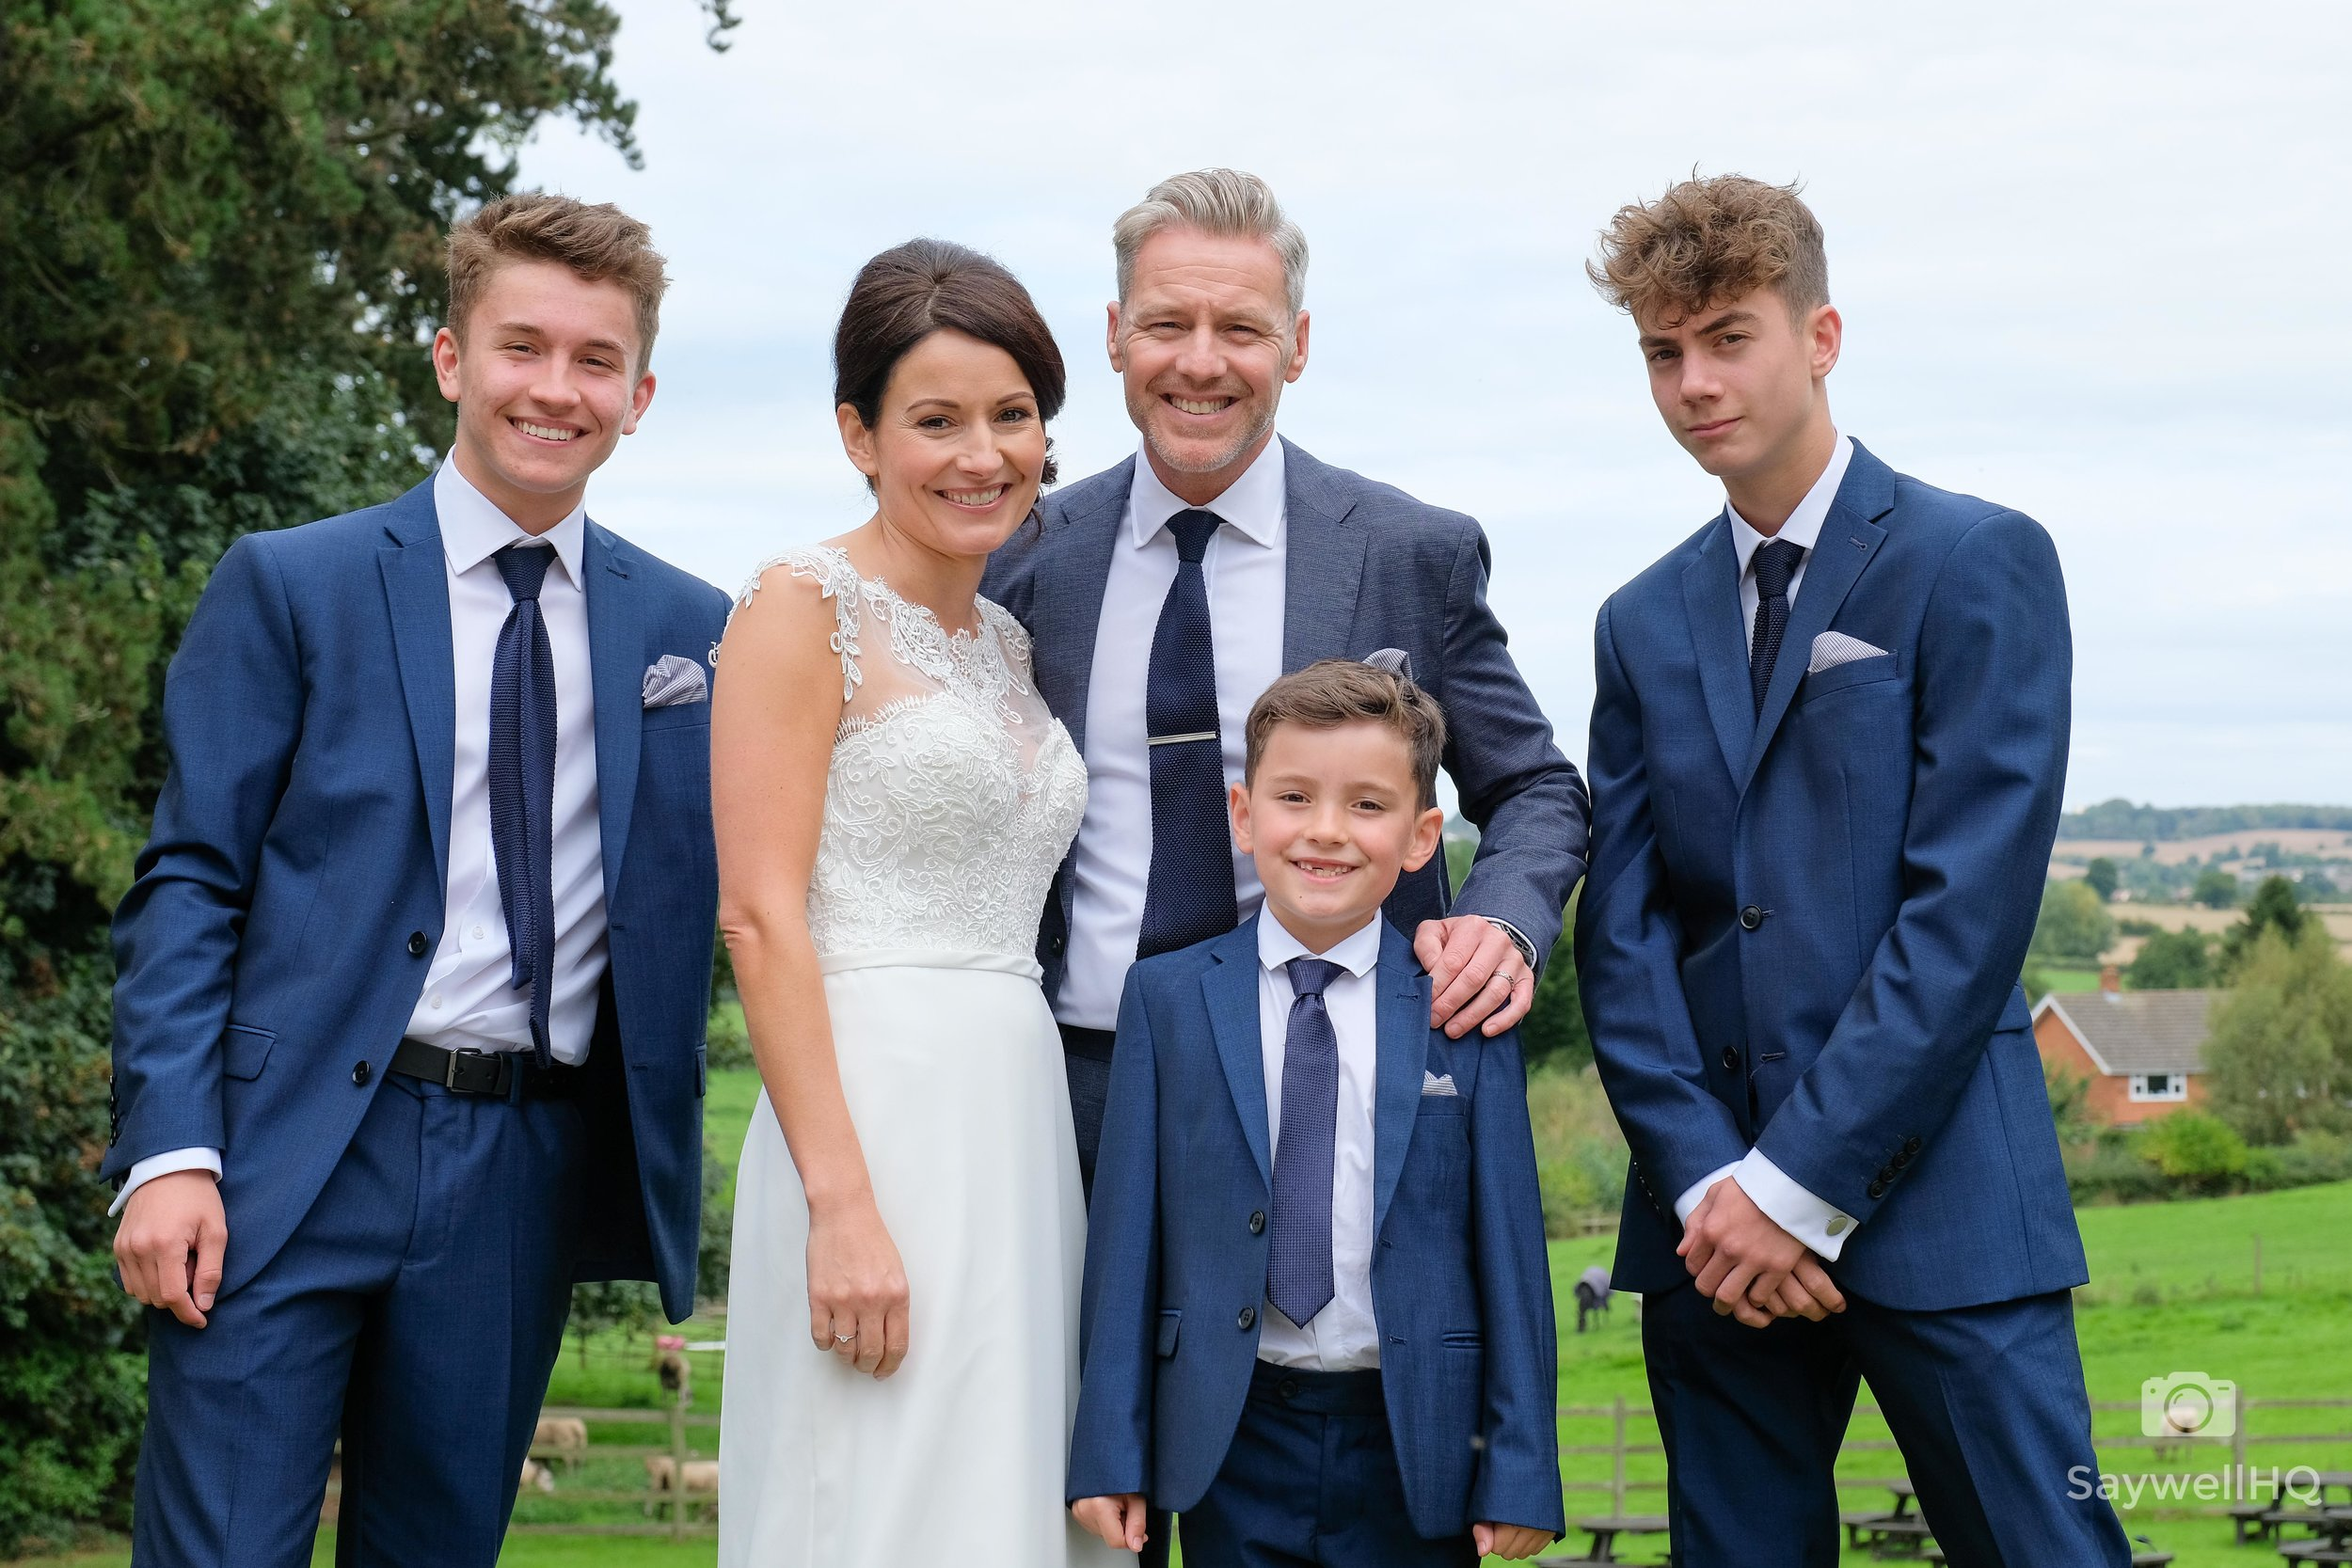 Stress Free Wedding Group Shots and Family Formals - easy way to do the family formals at weddings